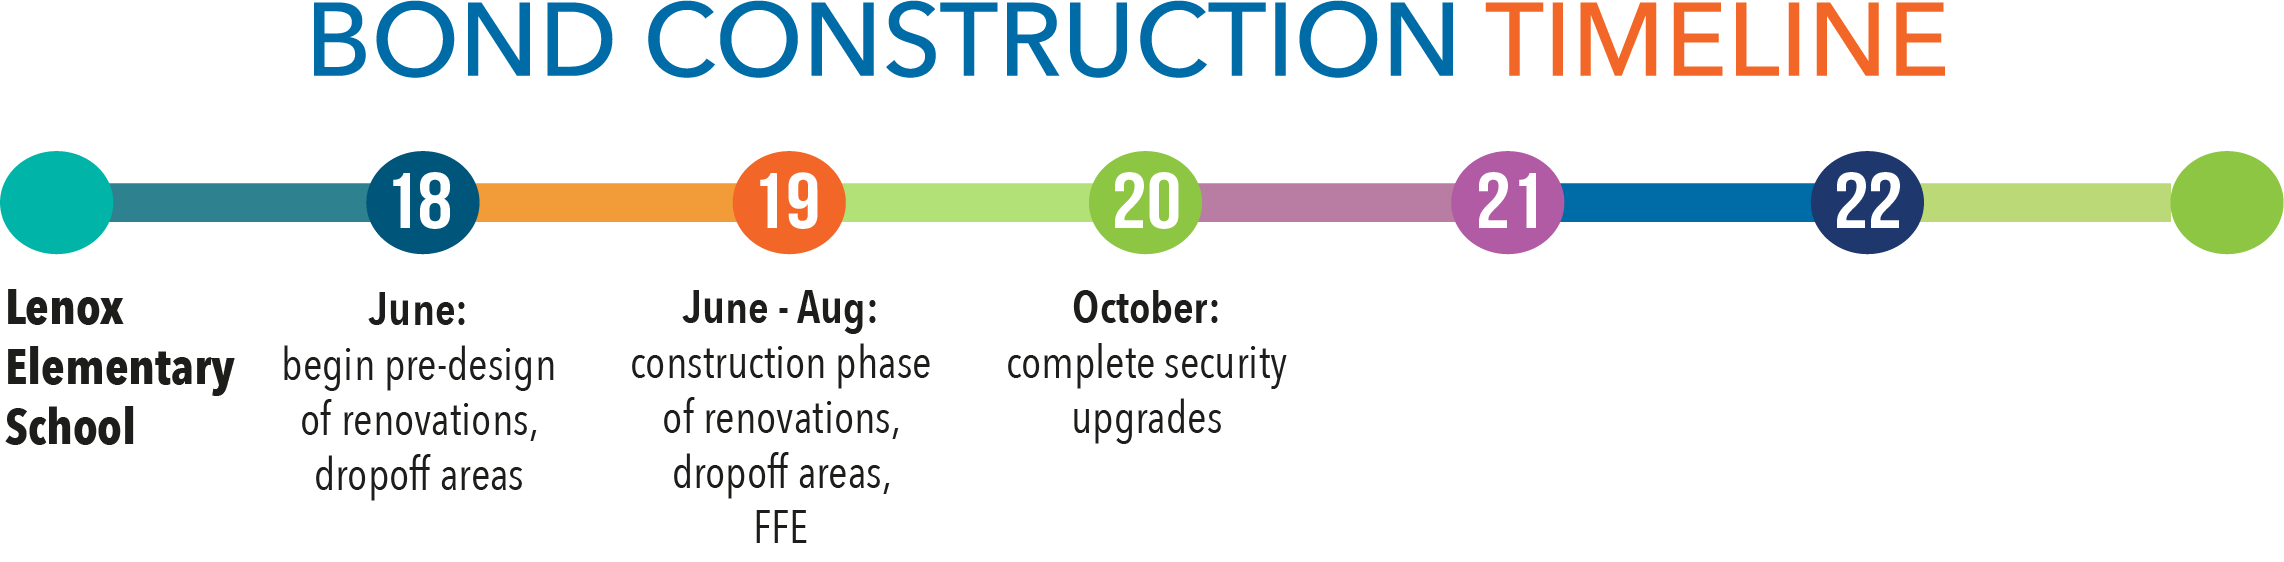 Bond construction timeline - Lenox